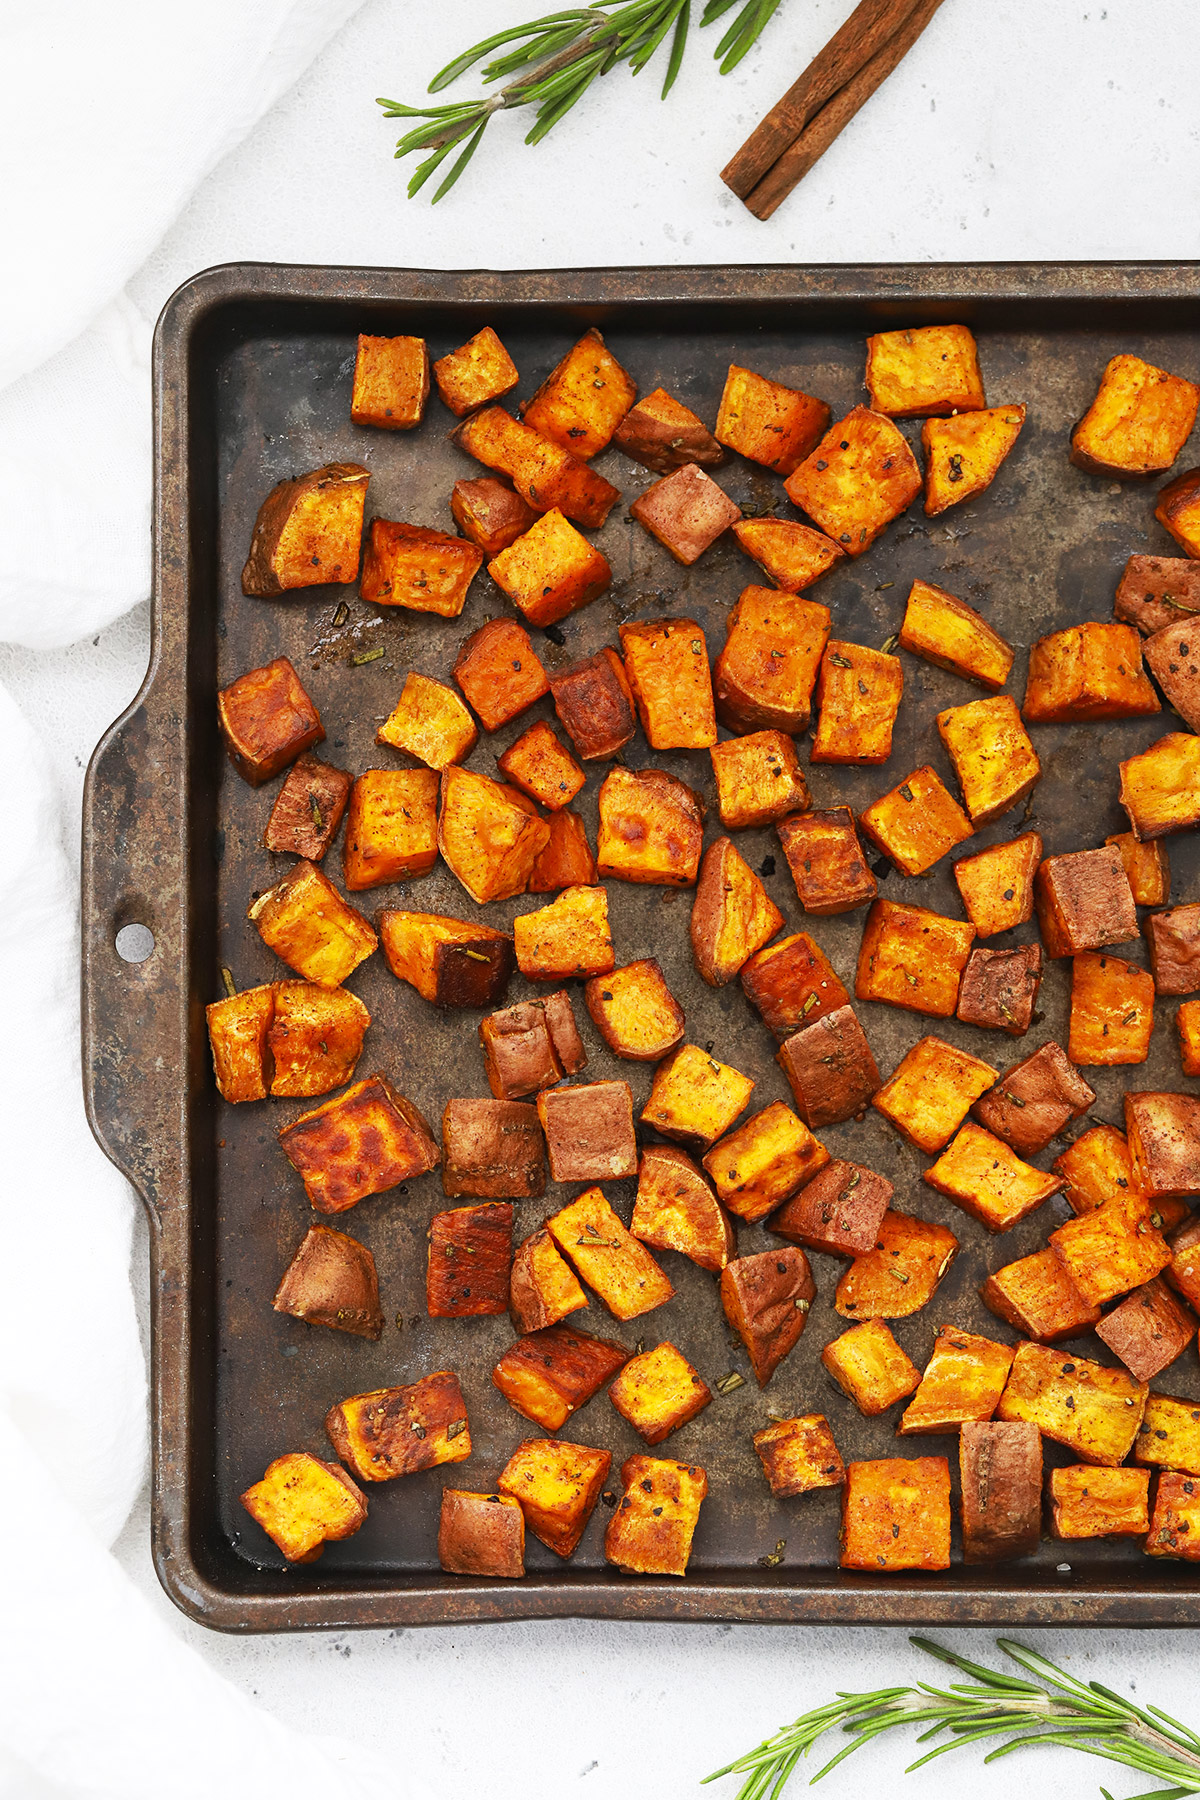 Overhead view of cinnamon roasted sweet potatoes on a baking sheet placed on a white background